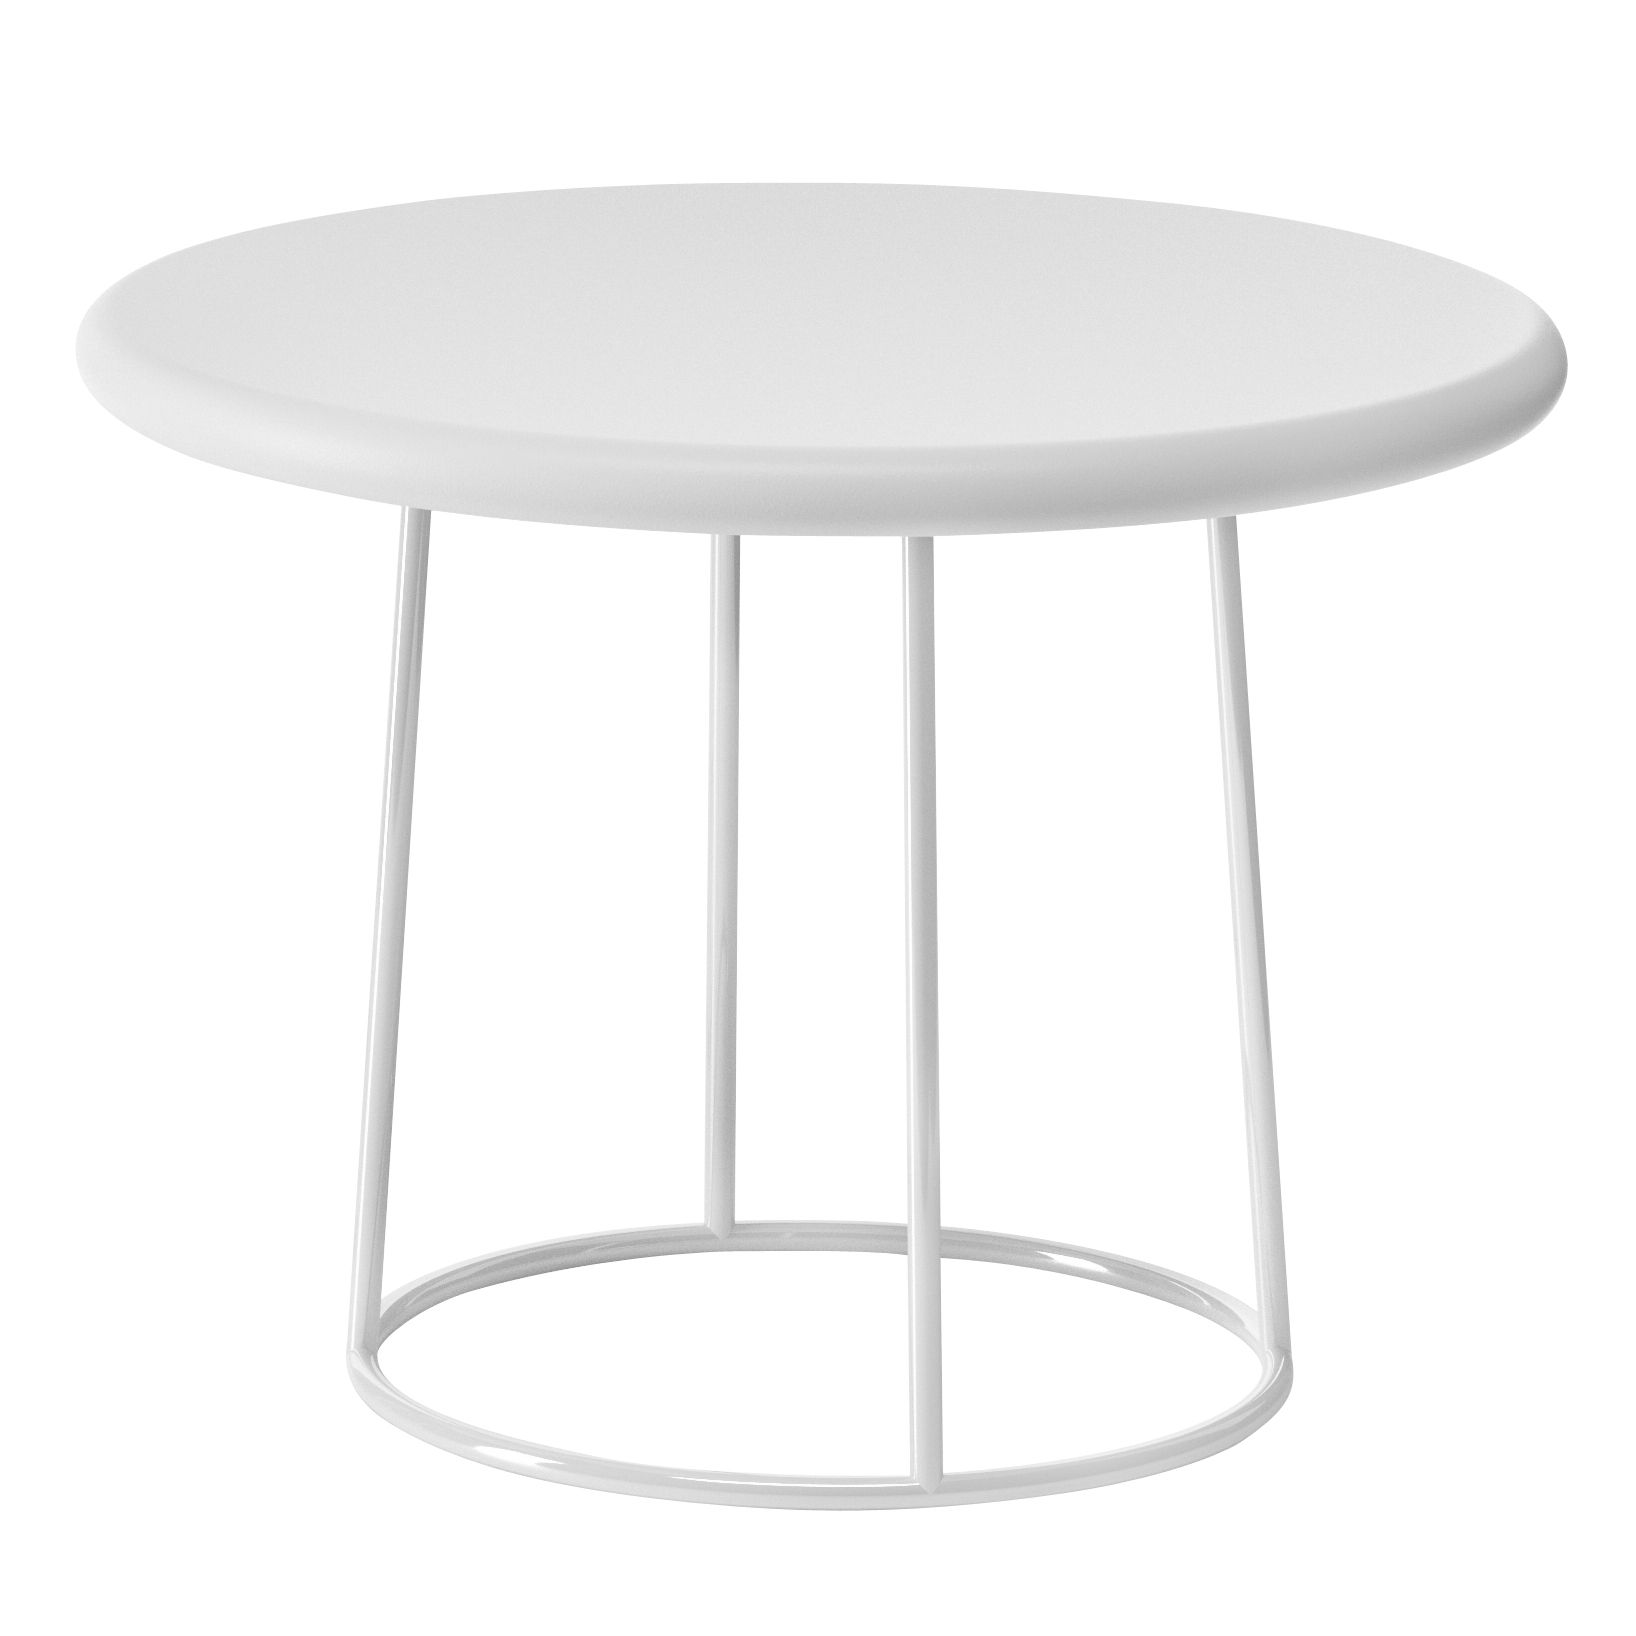 Olivia coffee table 70 x h 50 cm white by serralunga for Coffee table 70 x 70